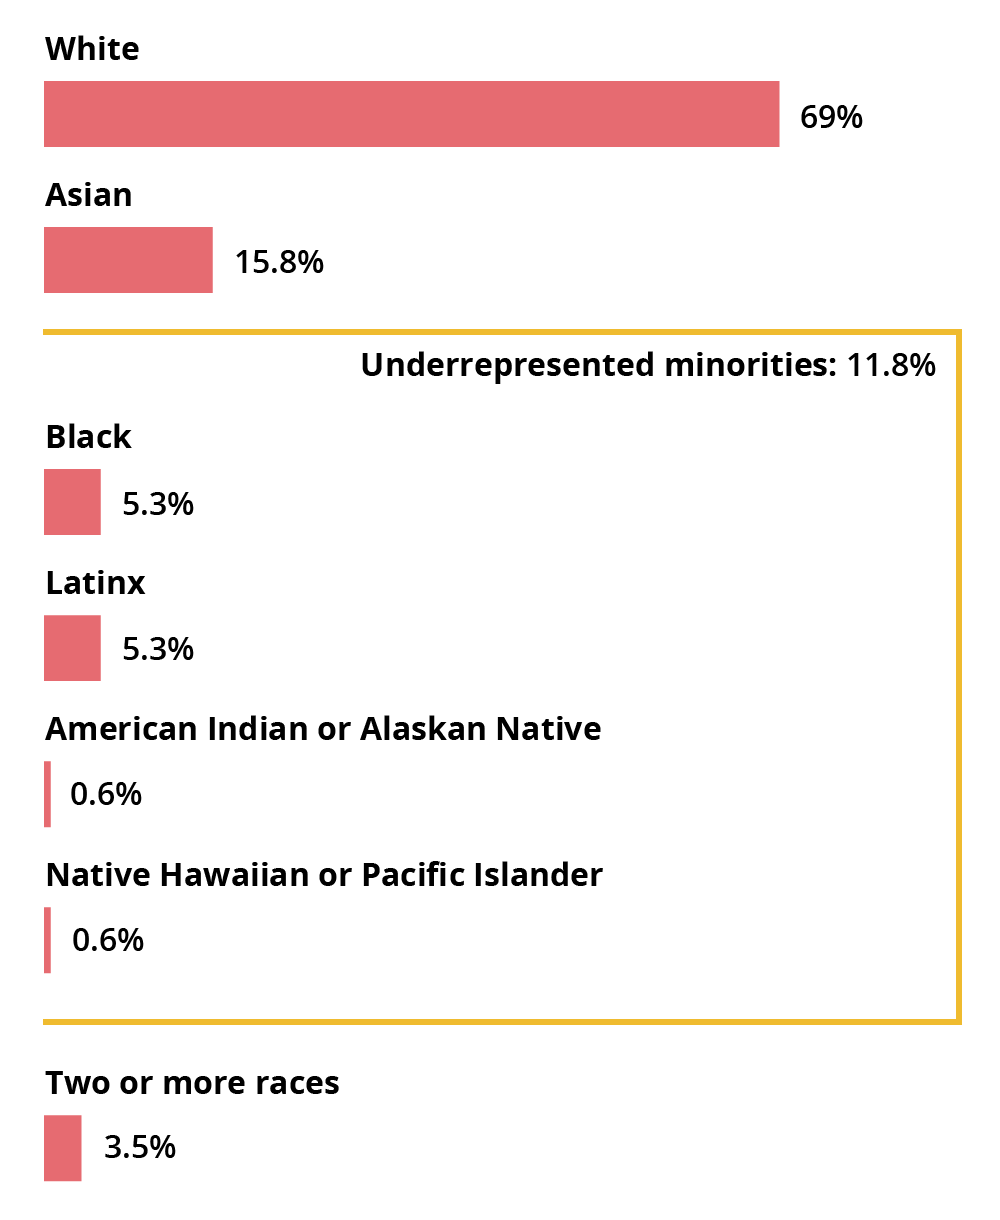 White: 69%, Asian: 15.8%, Black: 5.3%, Latinx: 5.3%, American Indian or Alaskan Native: 0.6%, Native Hawaiian or Pacific Islander: 0.6%, Two or more races: 3.5%. Underrepresented minorities total: 11.8%.